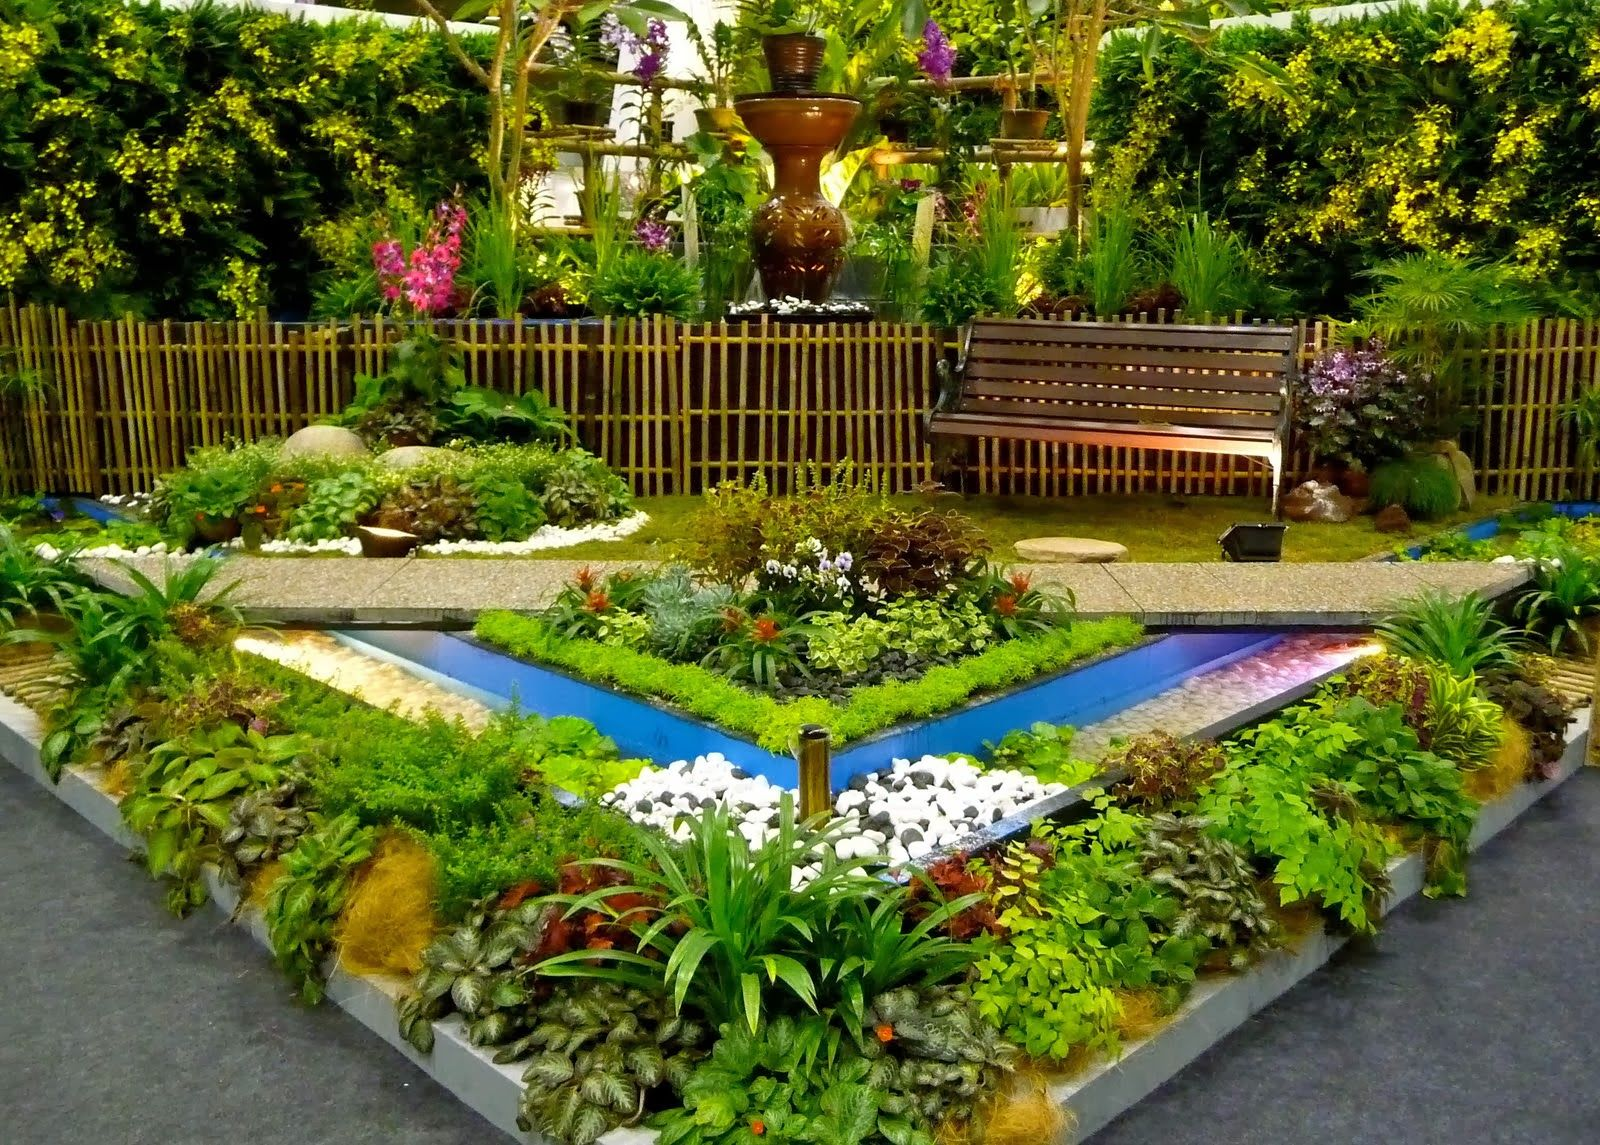 Best landscaping ideas i have ever seen wow design for Great small garden ideas